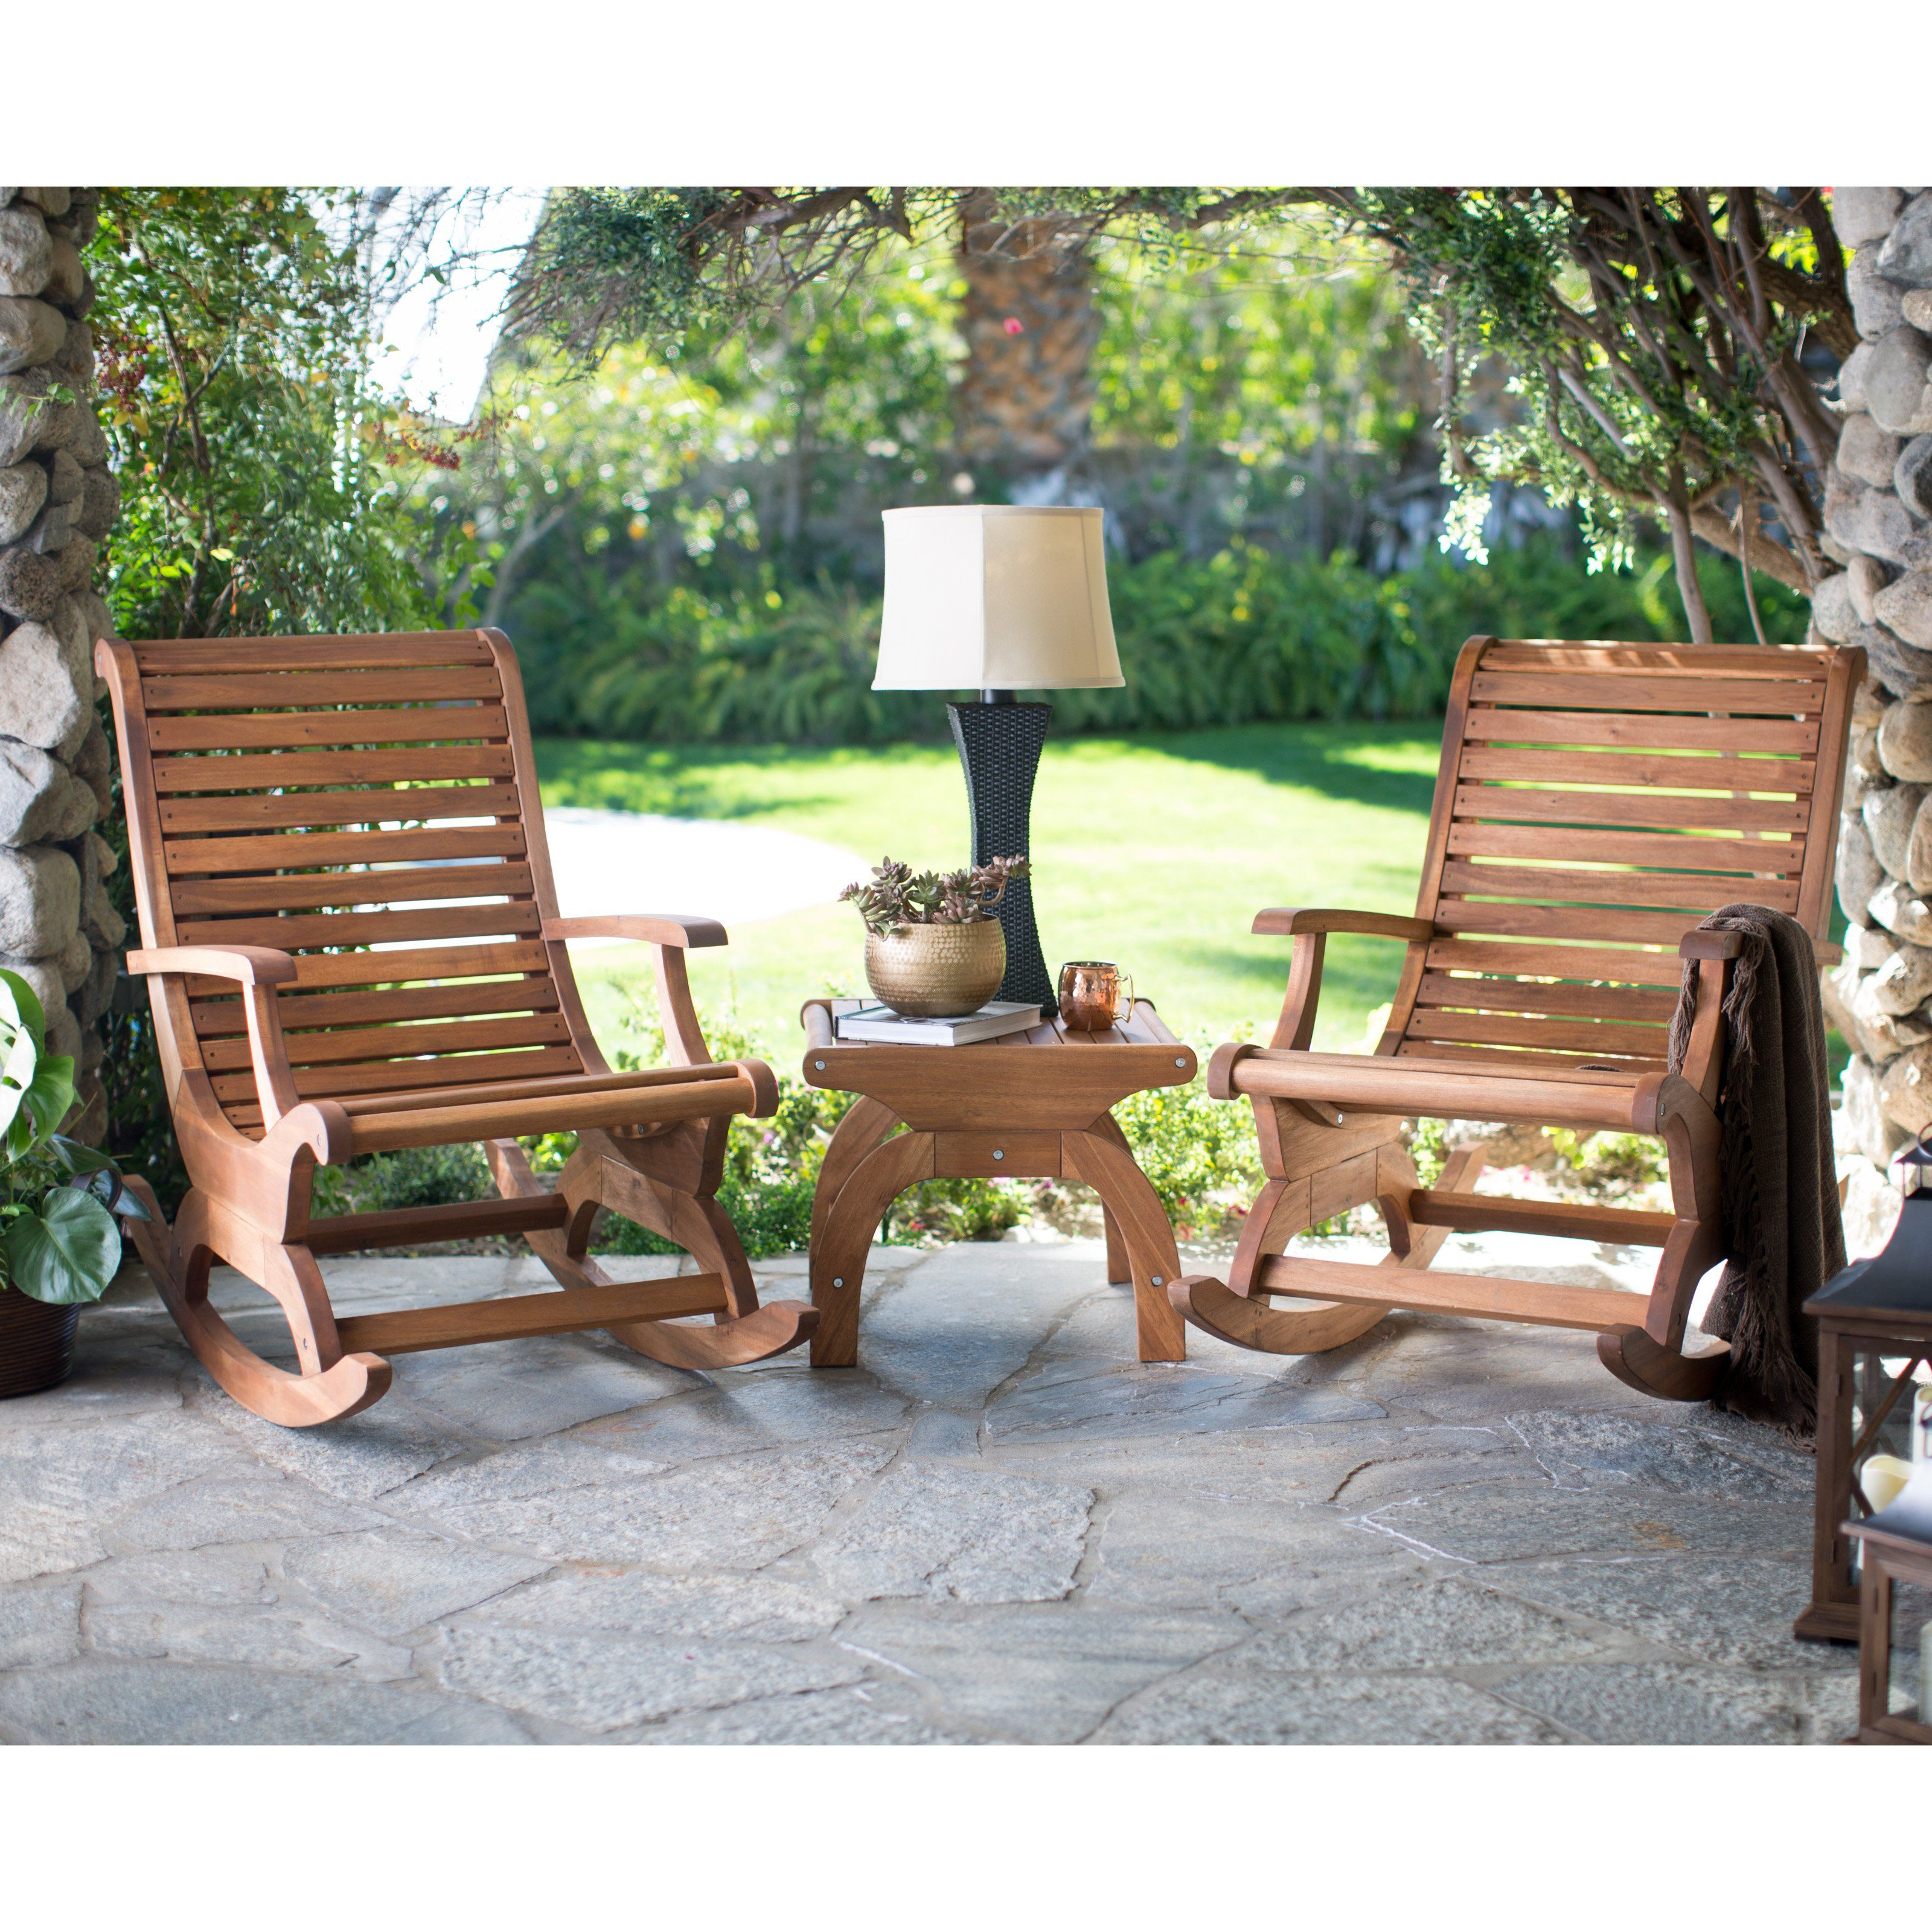 wooden porch inspirations rocking corechange chairs front simplest